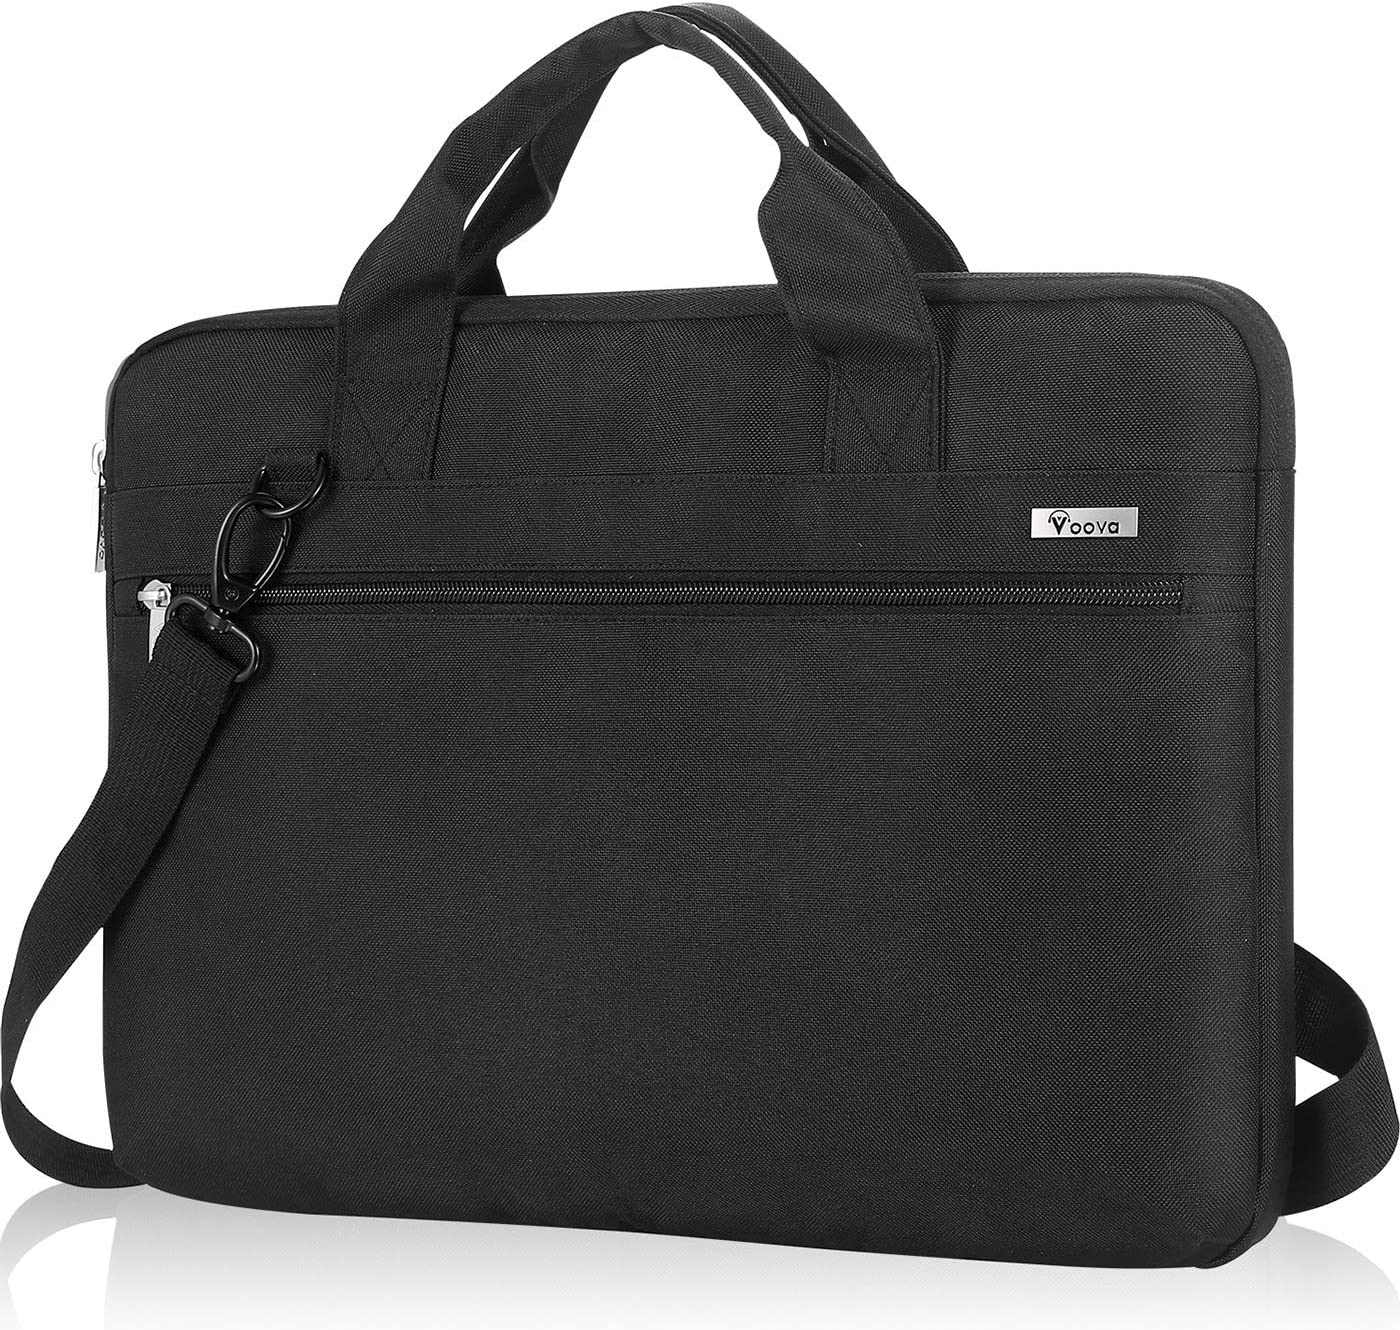 Voova Laptop Sleeve Shoulder Bag 14-15.6 Inch Carry Case, Upgrade Computer Messenger Briefcase Compatible with MacBook Pro 16 15, Surface Book 2 15, Asus Acer Dell Hp Chormebook with Organizers, Black